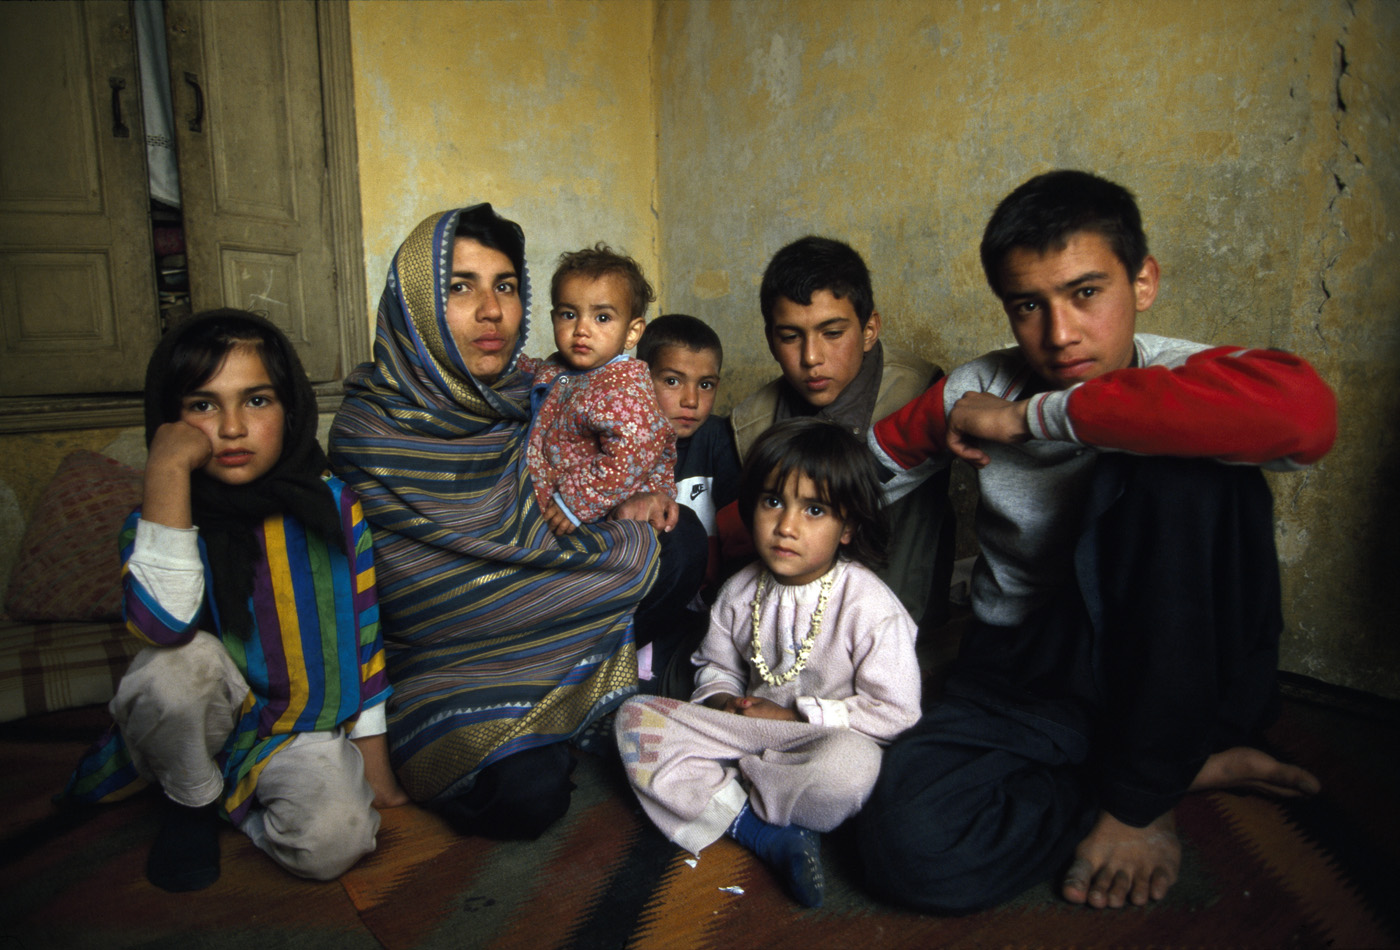 October 1996: A widow of an Afghan mujahideen fighter seeks refuge with her children in an unheated apartment in Kabul. The women's husband was killed while fighting the Taliban. Kabul has between 30,000 and 50,000 war widows with little means of support and their situation became more precarious once the Taliban took over in September 1996.